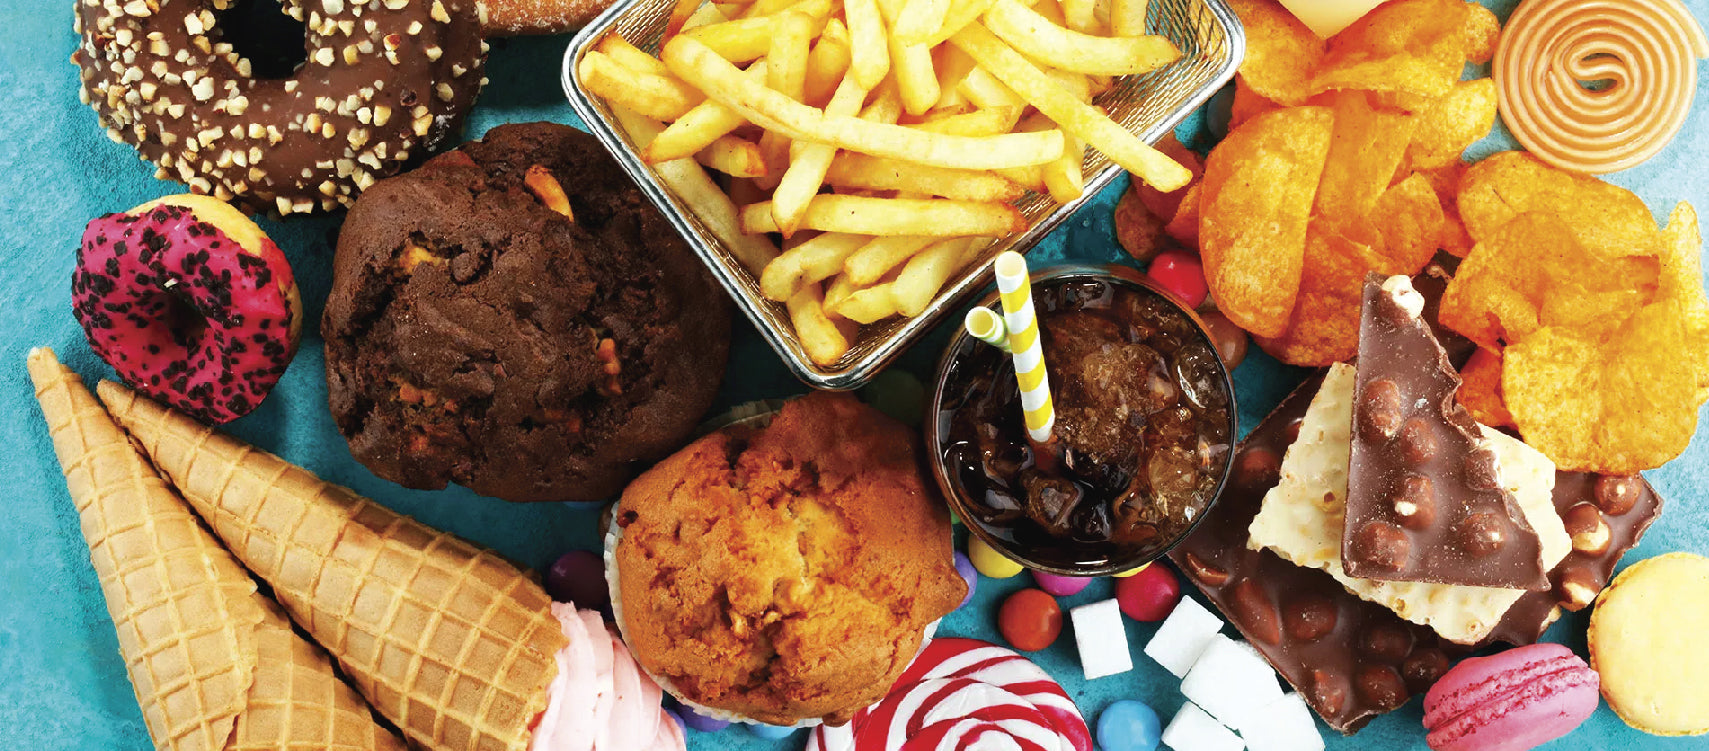 Different kinds of junk foods